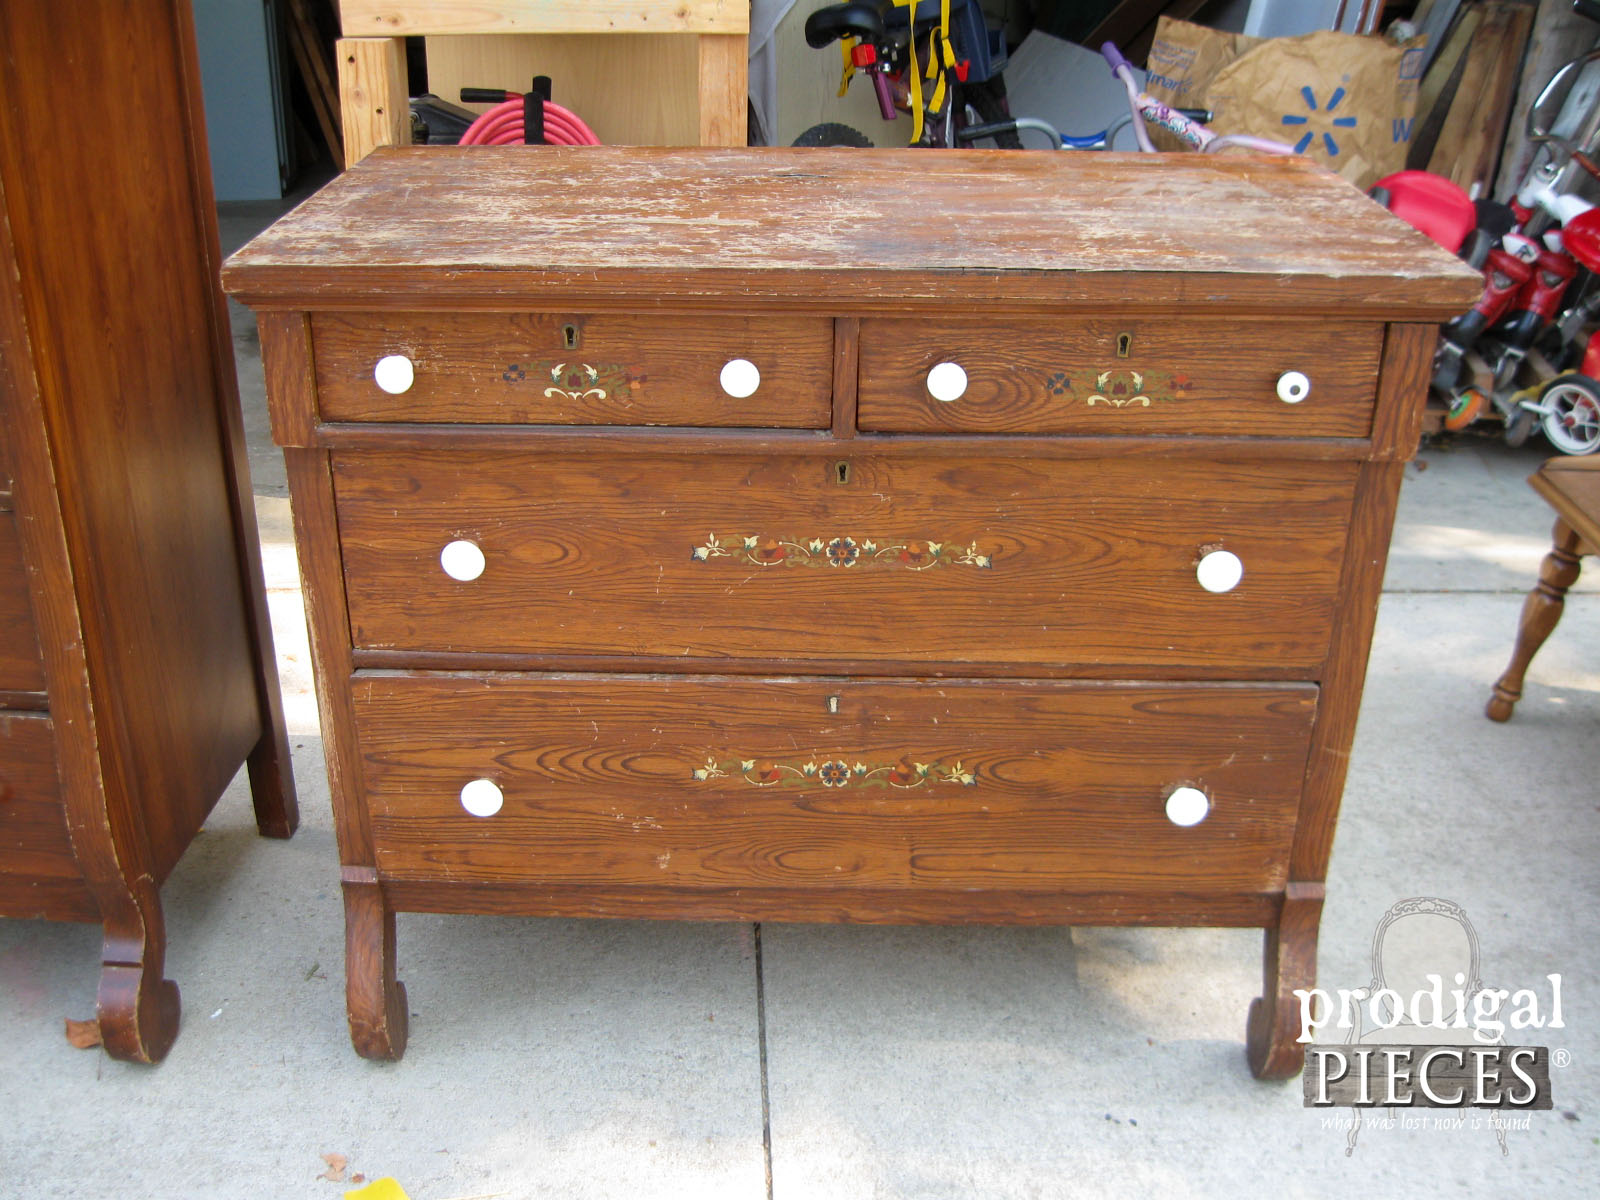 Farmhouse Empire Dresser Before Makeover by Prodigal Pieces | www.prodigalpieces.com